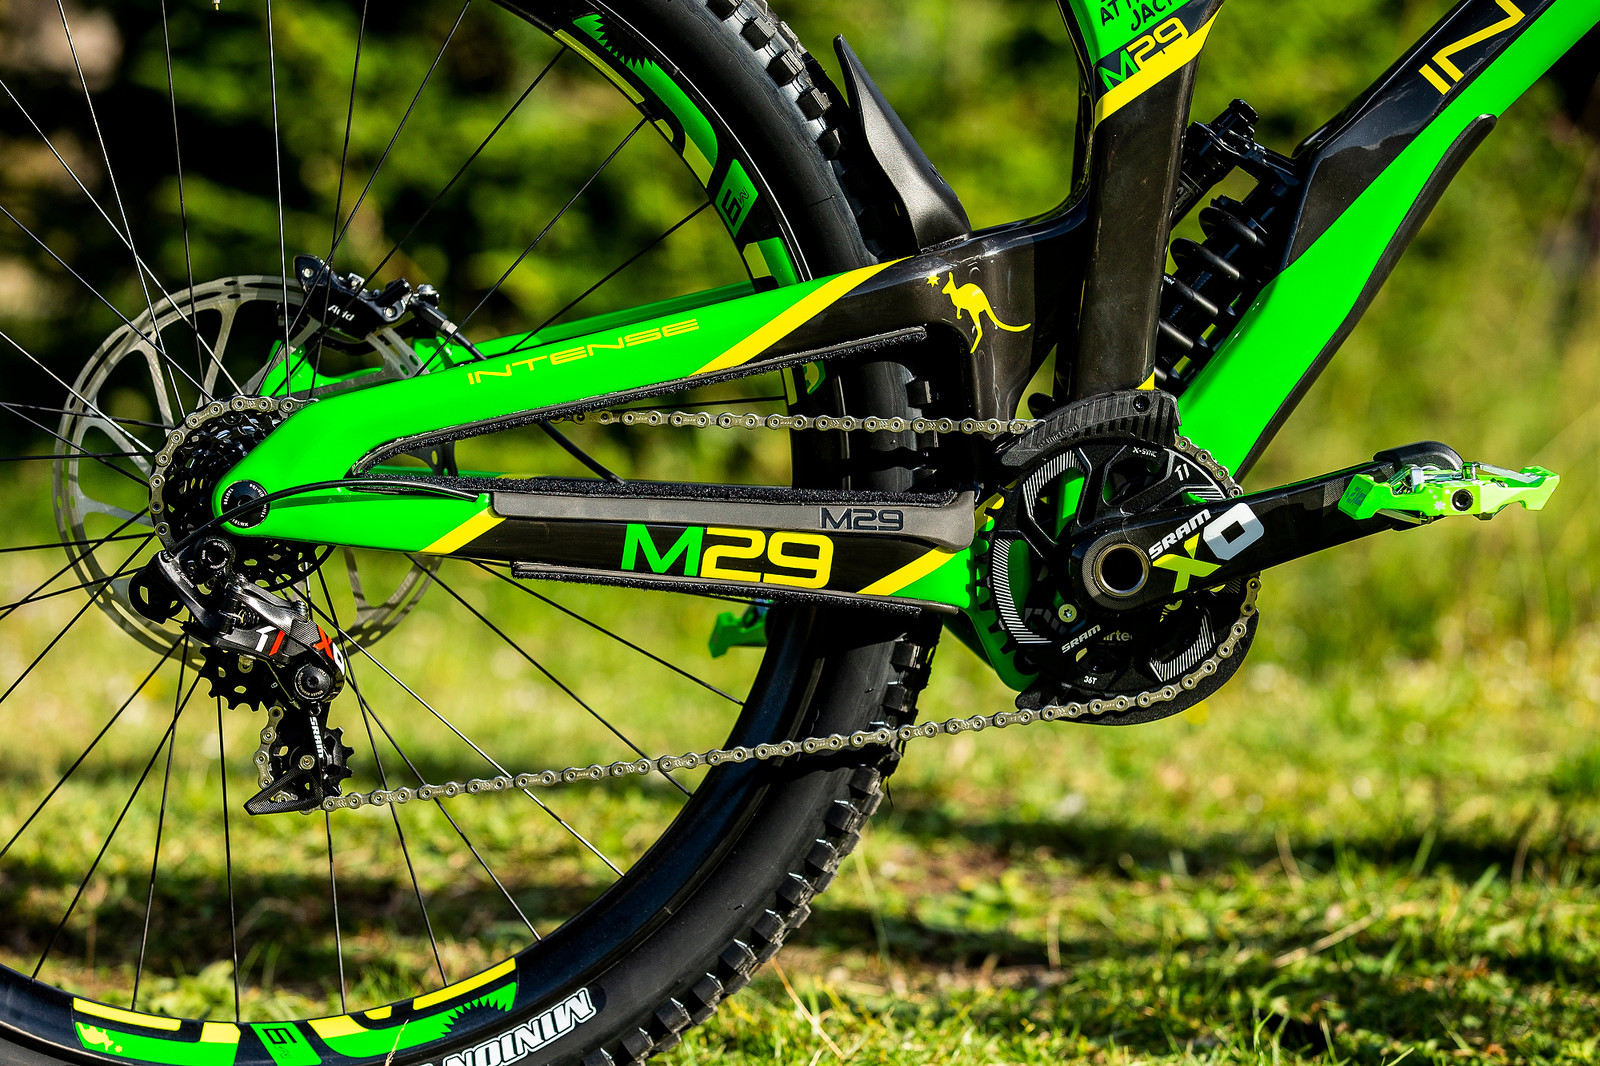 Drivetrain - WORLD CHAMPS BIKE - Jack Moir's Intense M29 - Mountain Biking Pictures - Vital MTB